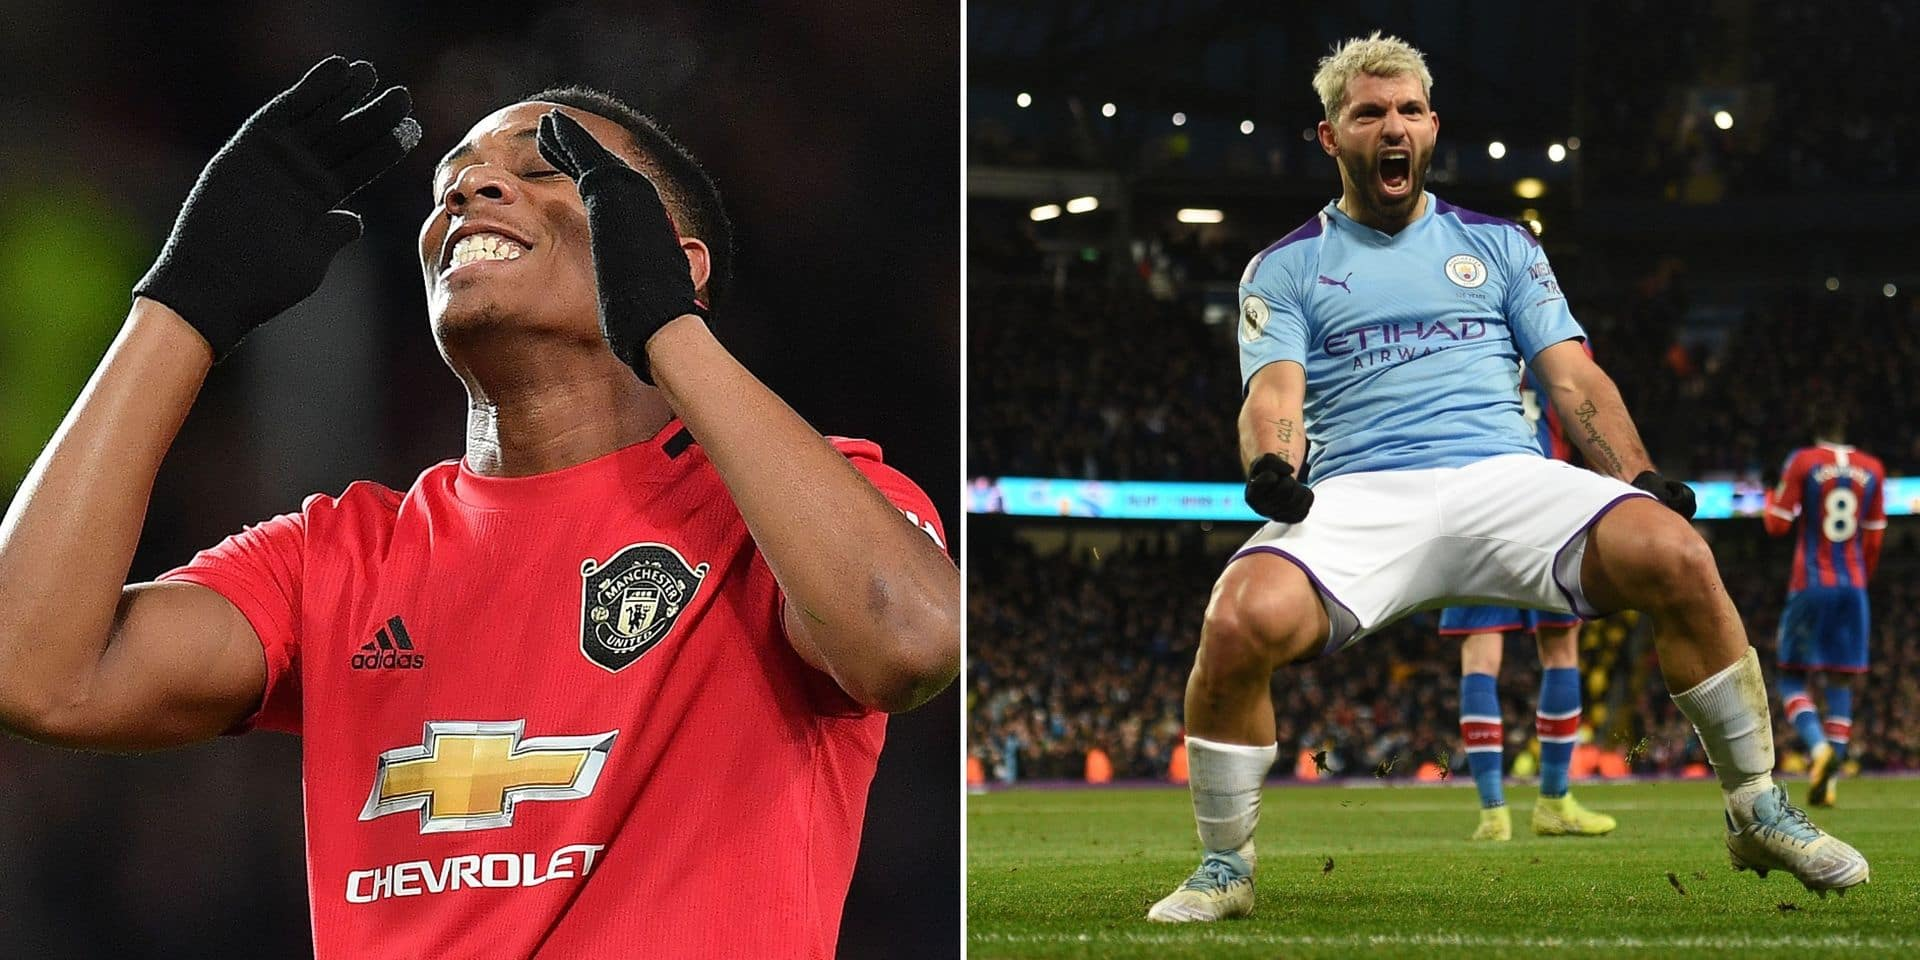 City reçoit United en League Cup: le déclin d'un empire mancunien